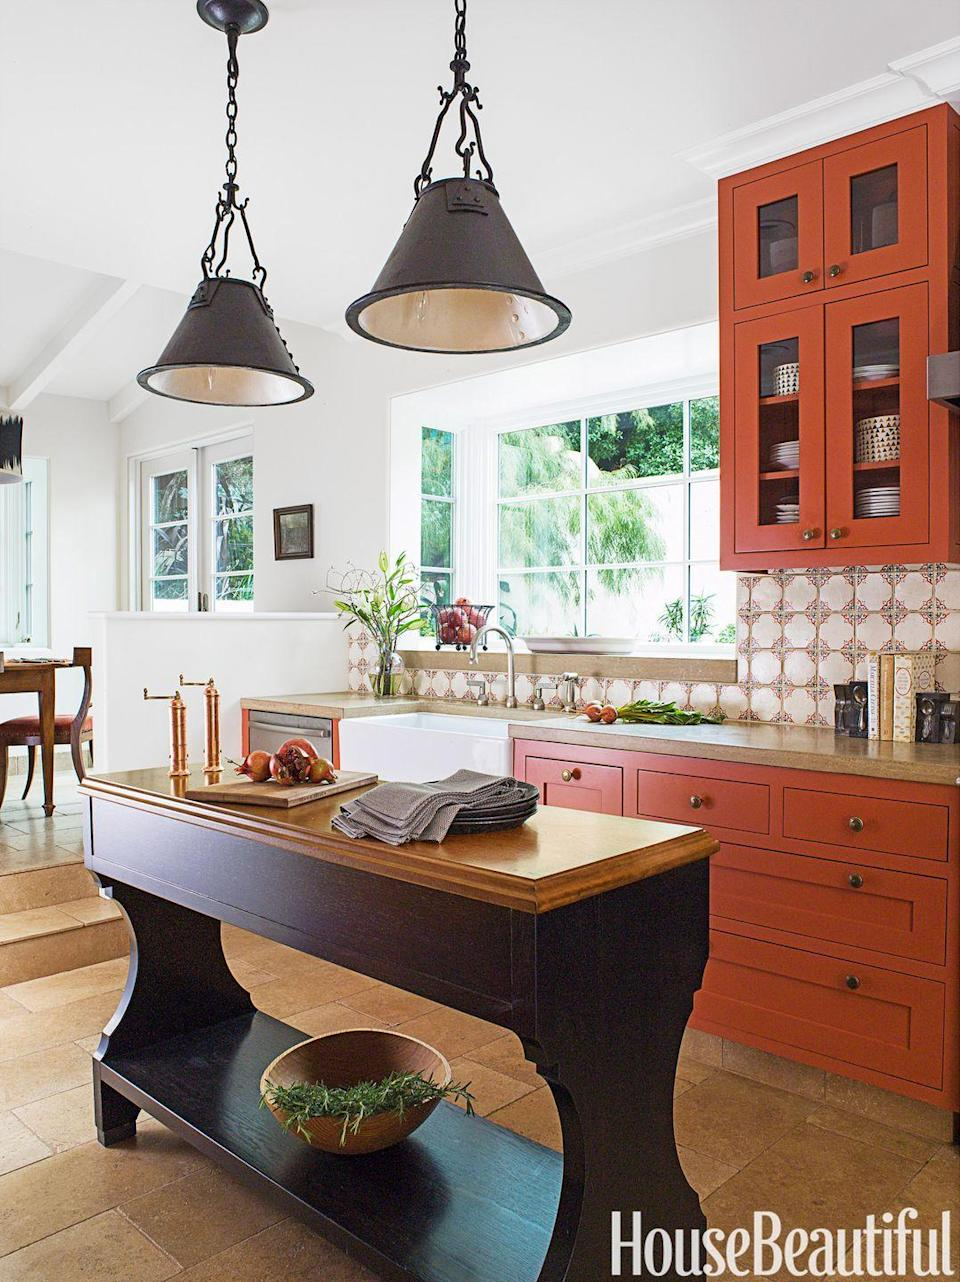 "<p>Burnt orange cabinets are unexpected, but add a rustic touch to a kitchen. To add to the effect, hand-forged iron lanterns were hung, but painted white inside to reflect more light onto the <a href=""https://www.housebeautiful.com/room-decorating/kitchens/g1857/burnt-orange-kitchen-0514/"" rel=""nofollow noopener"" target=""_blank"" data-ylk=""slk:island"" class=""link rapid-noclick-resp"">island</a>. Copy this slim kitchen island if your space is small since it gets the job done without looking out of scale. </p>"